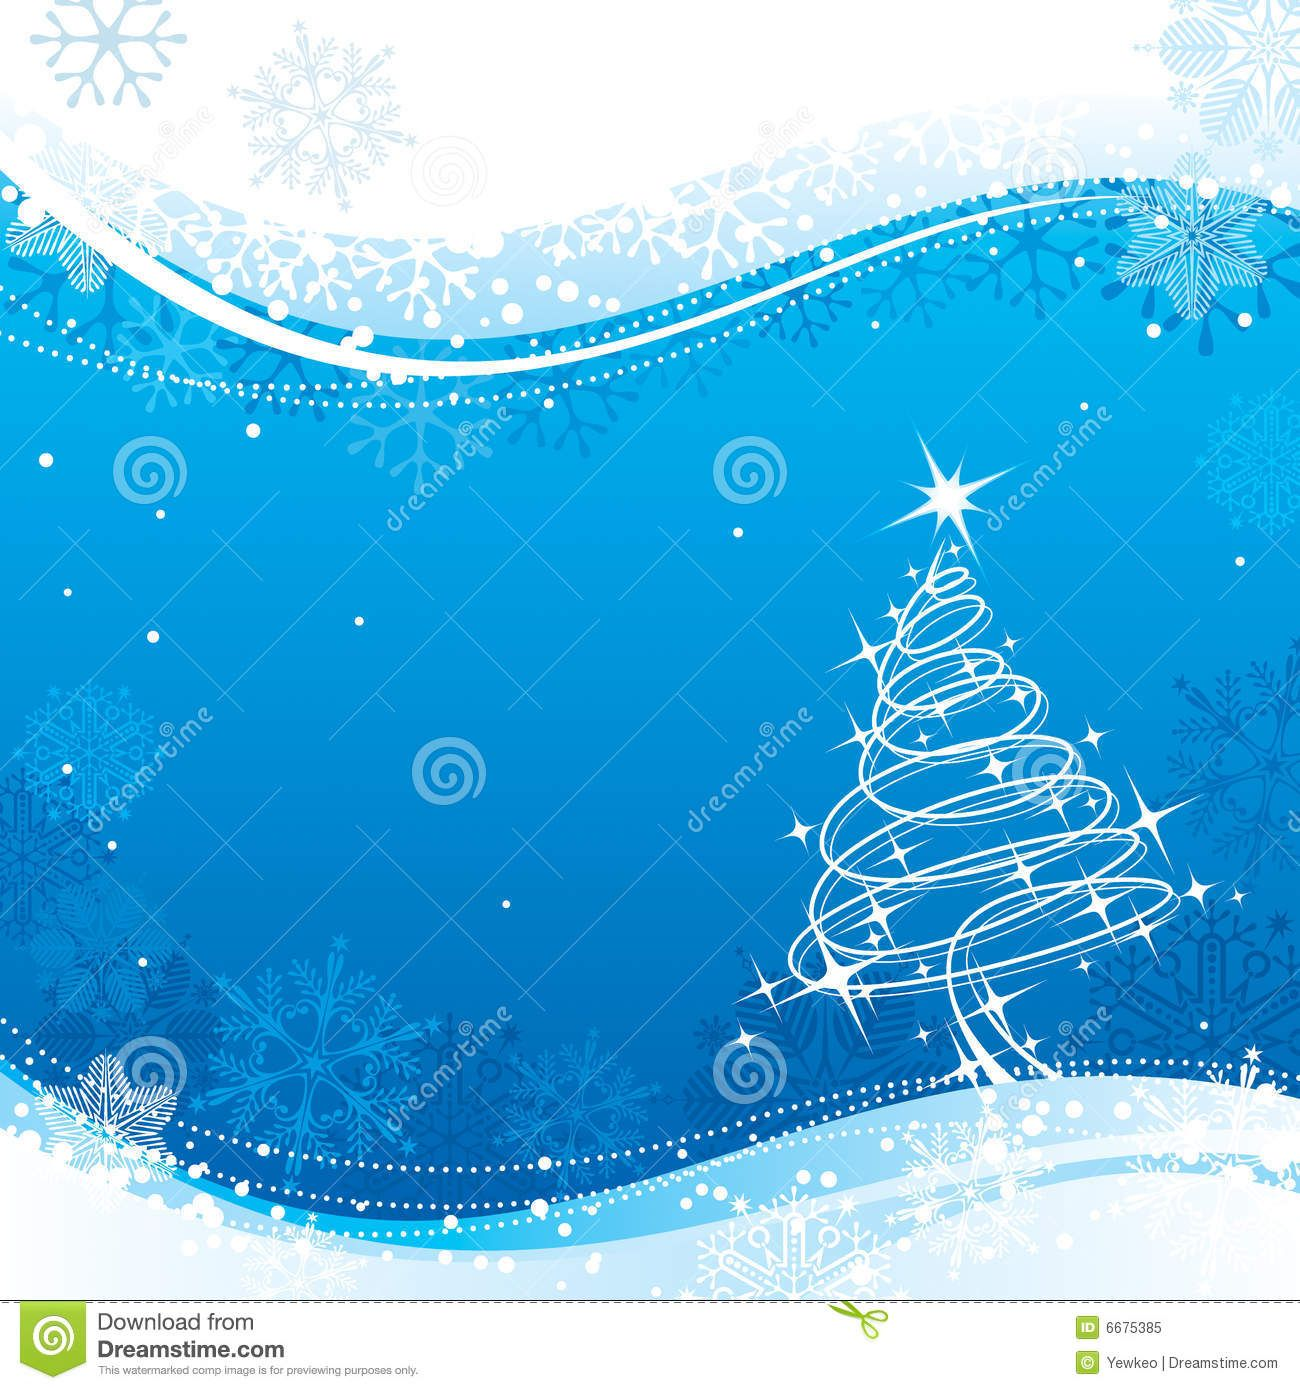 blue christmas cartoon vector cartoondealer com 6675385 blue christmas christmas cartoons christmas background vector blue christmas cartoon vector